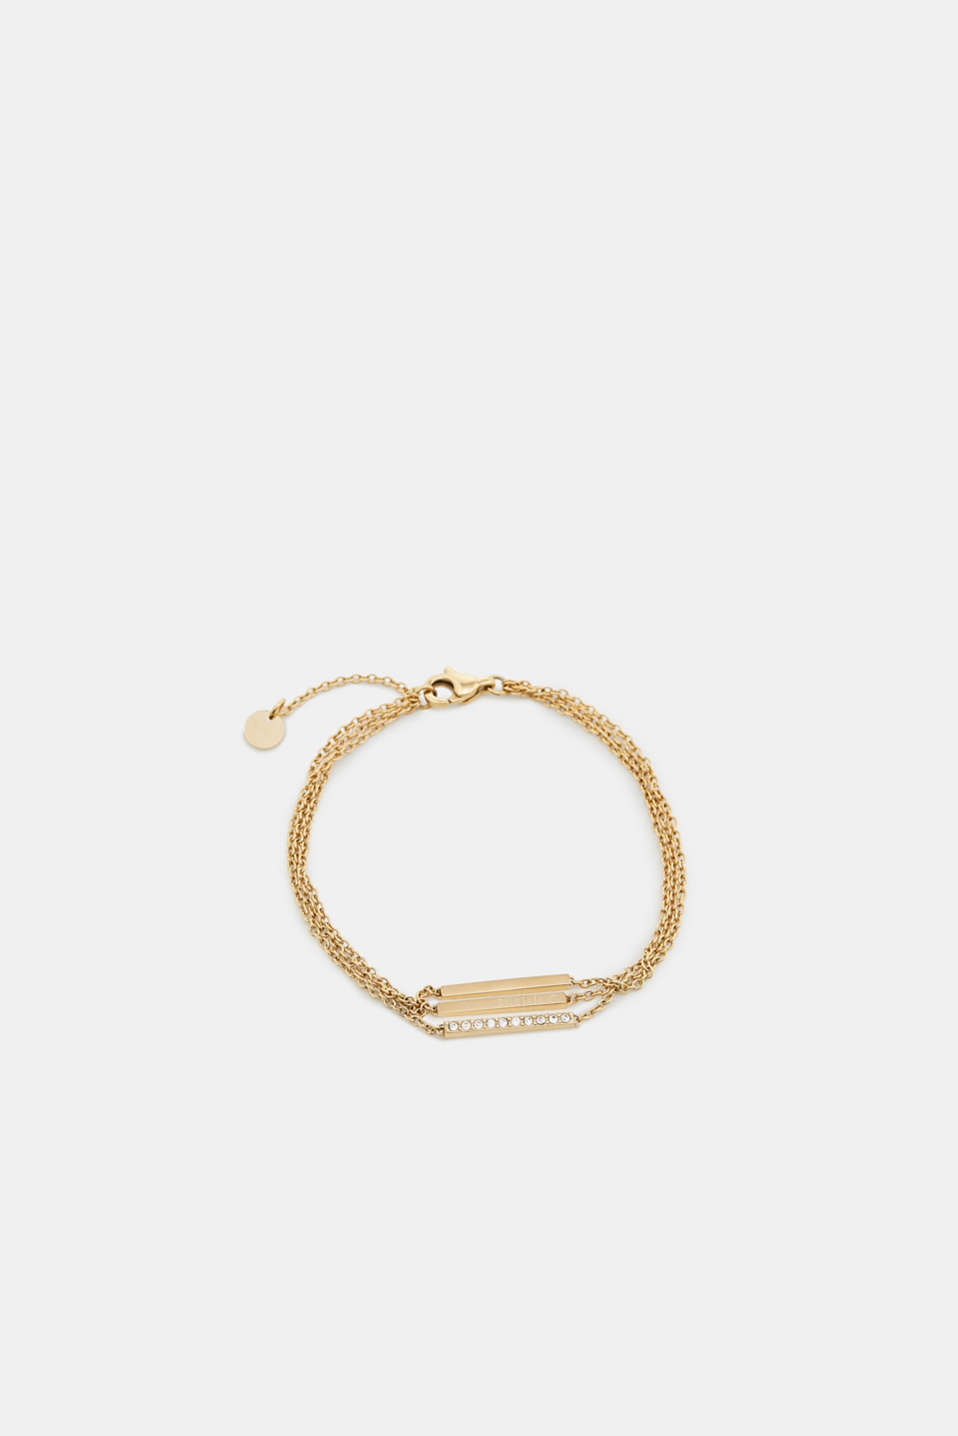 The timeless design makes this multi-strand bracelet made of stainless steel the perfect everyday accessory.